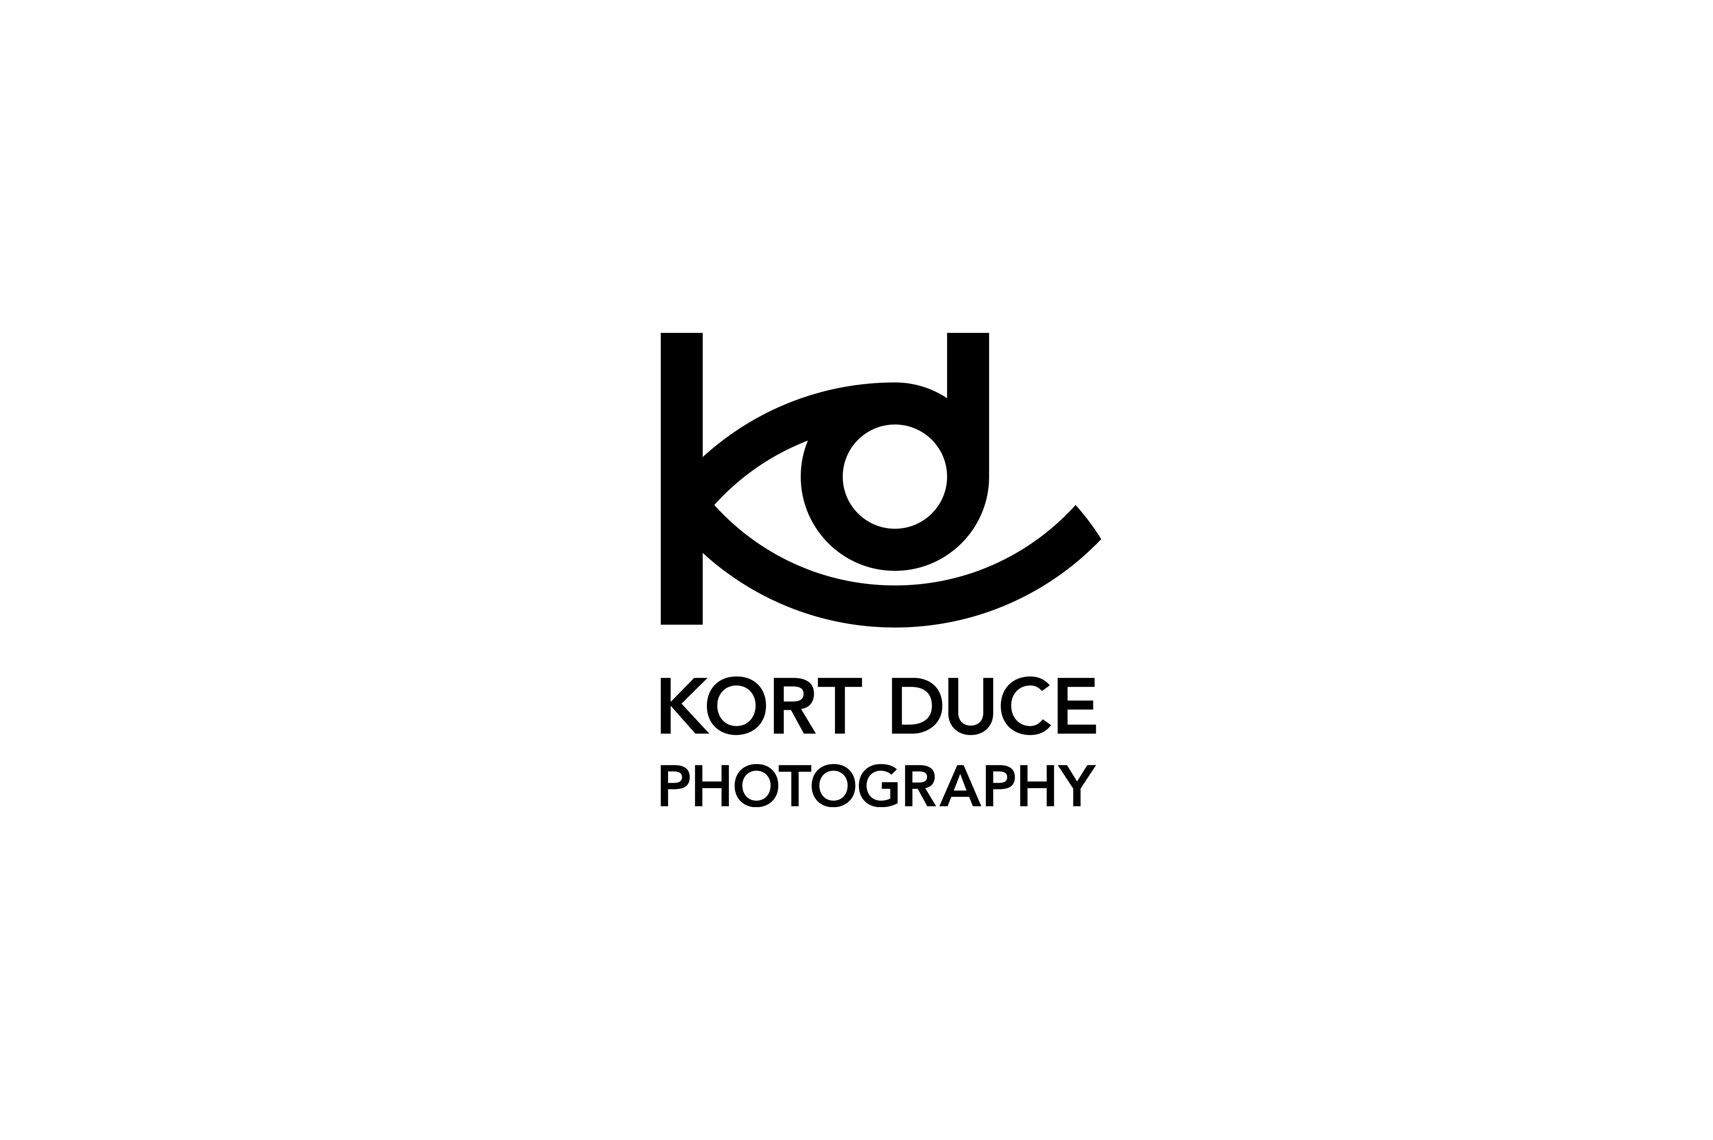 Kort-Duce-Industrial-Photography-001